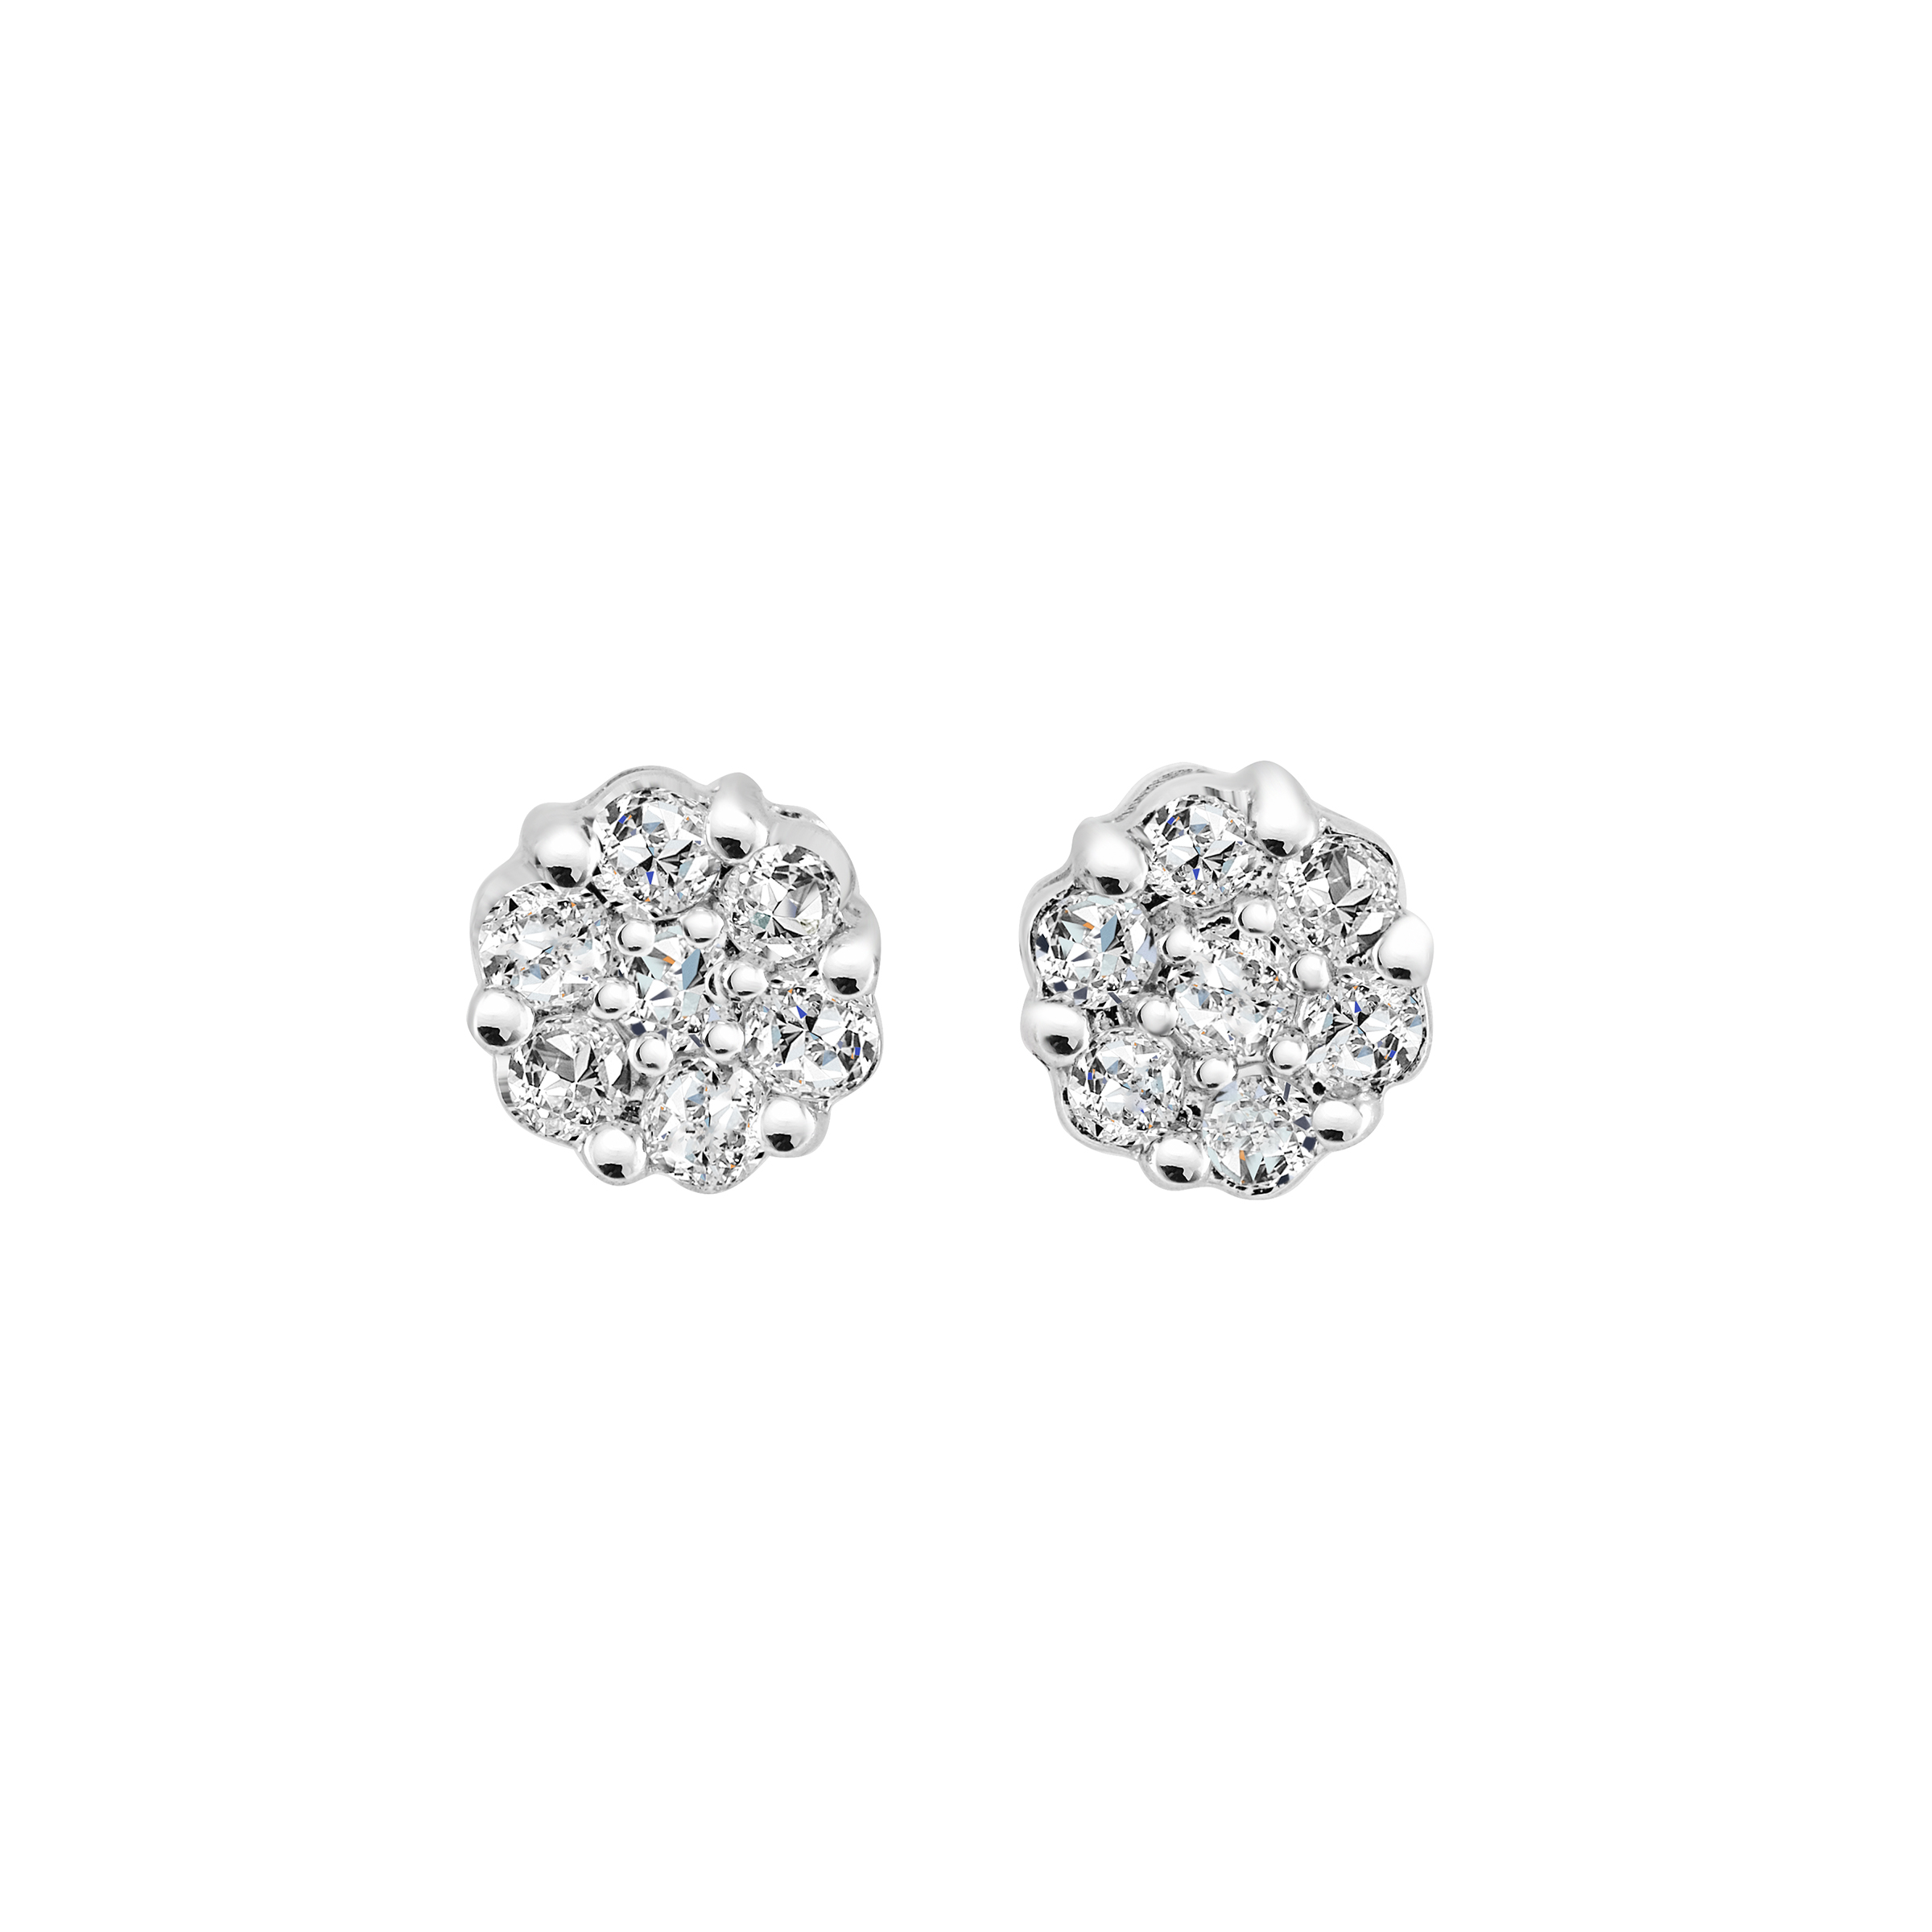 Boucles d'oreilles fixes - Or blanc 14K & Diamants totalisant 15pts.